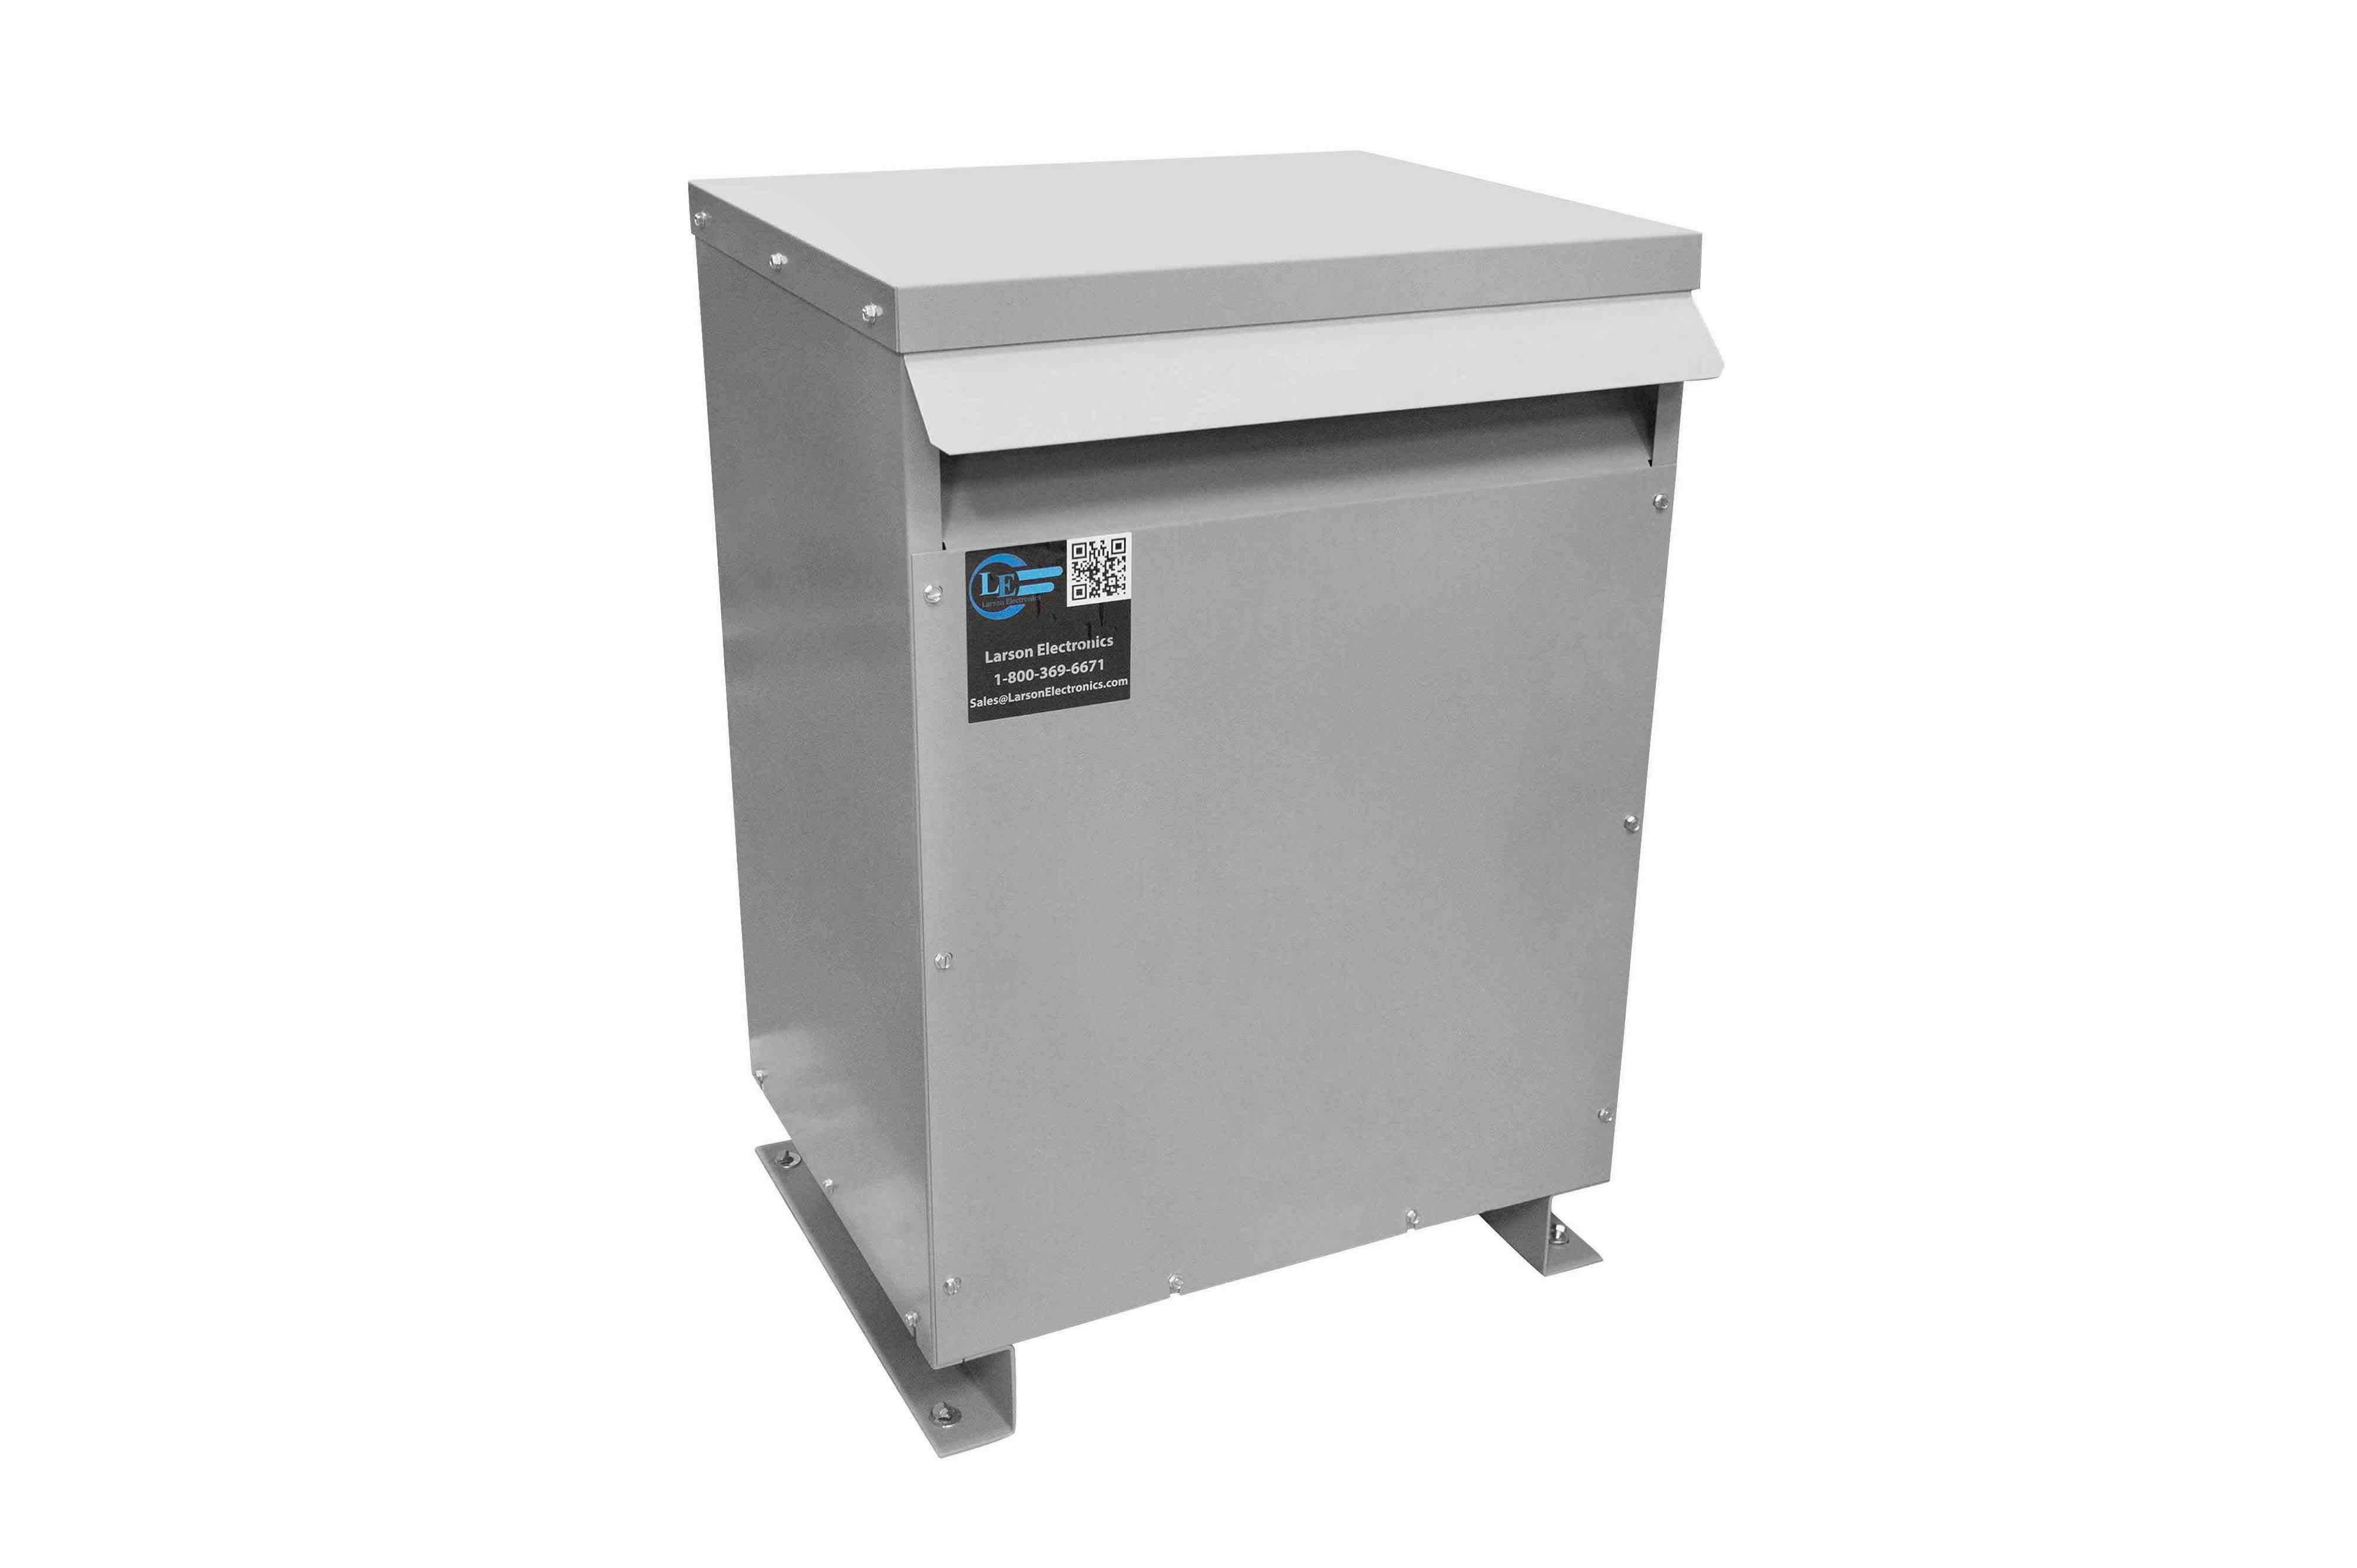 30 kVA 3PH DOE Transformer, 380V Delta Primary, 208Y/120 Wye-N Secondary, N3R, Ventilated, 60 Hz